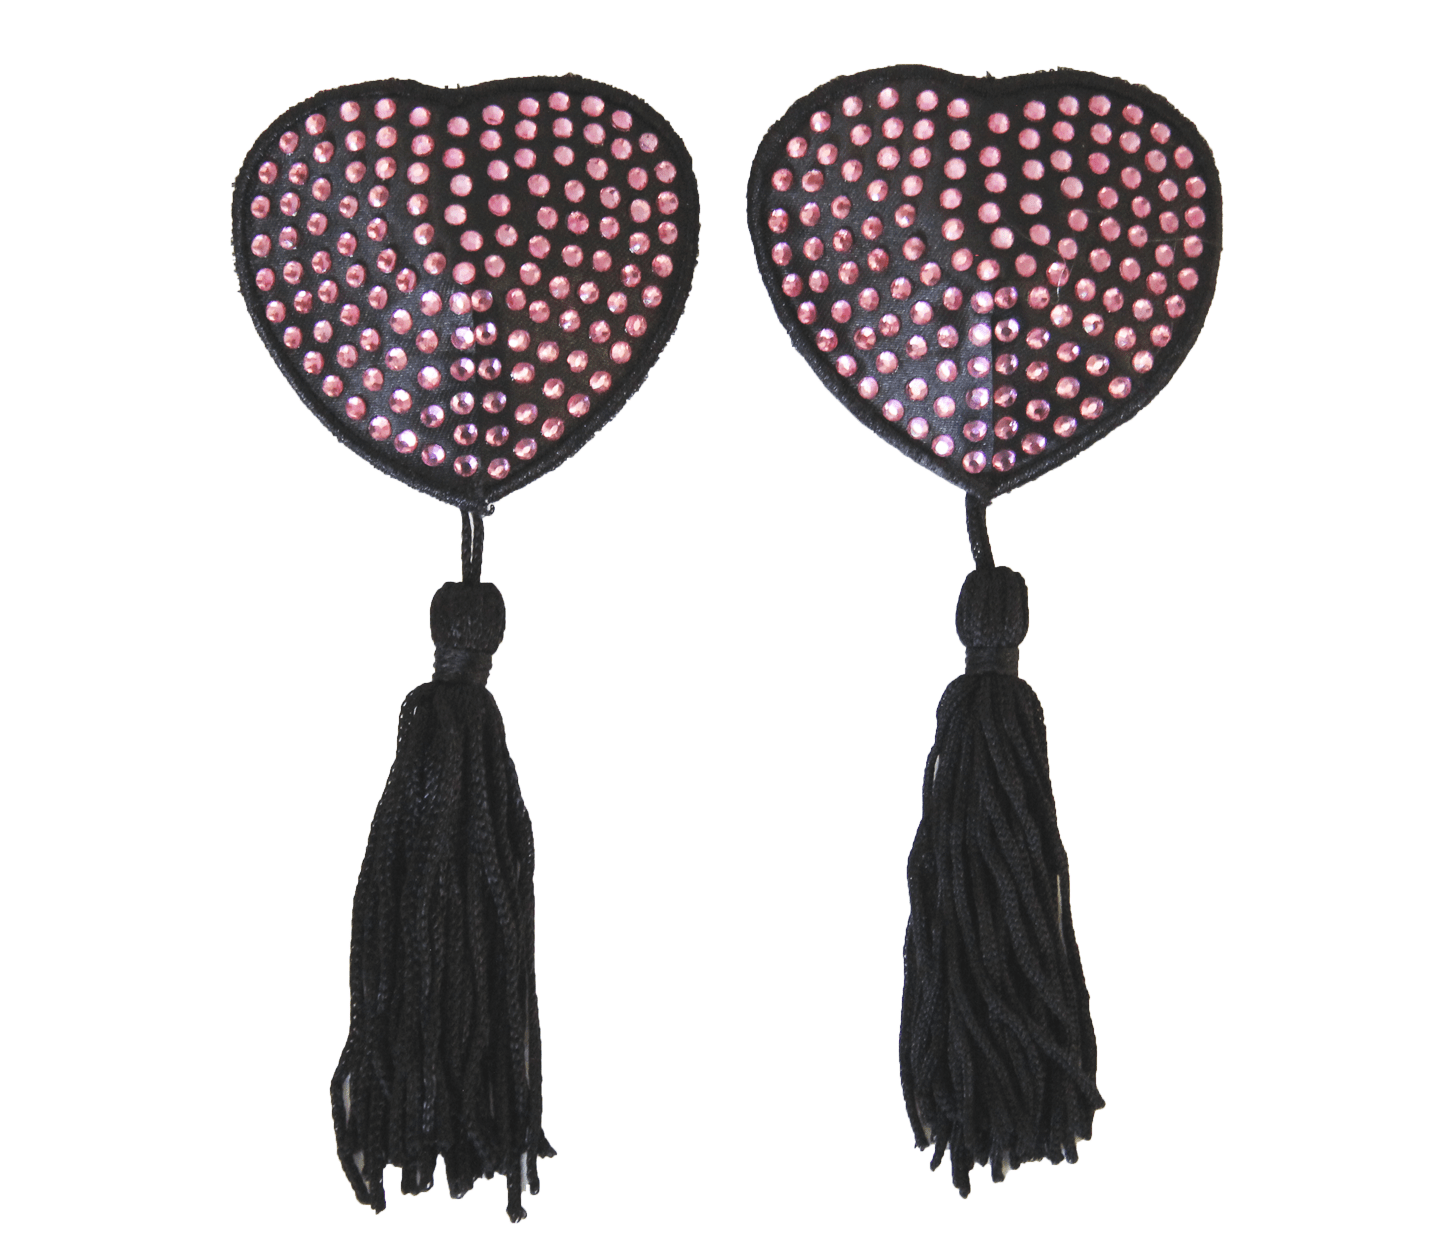 nipple covers pale pink black  tassels love in leather front image saucy hq